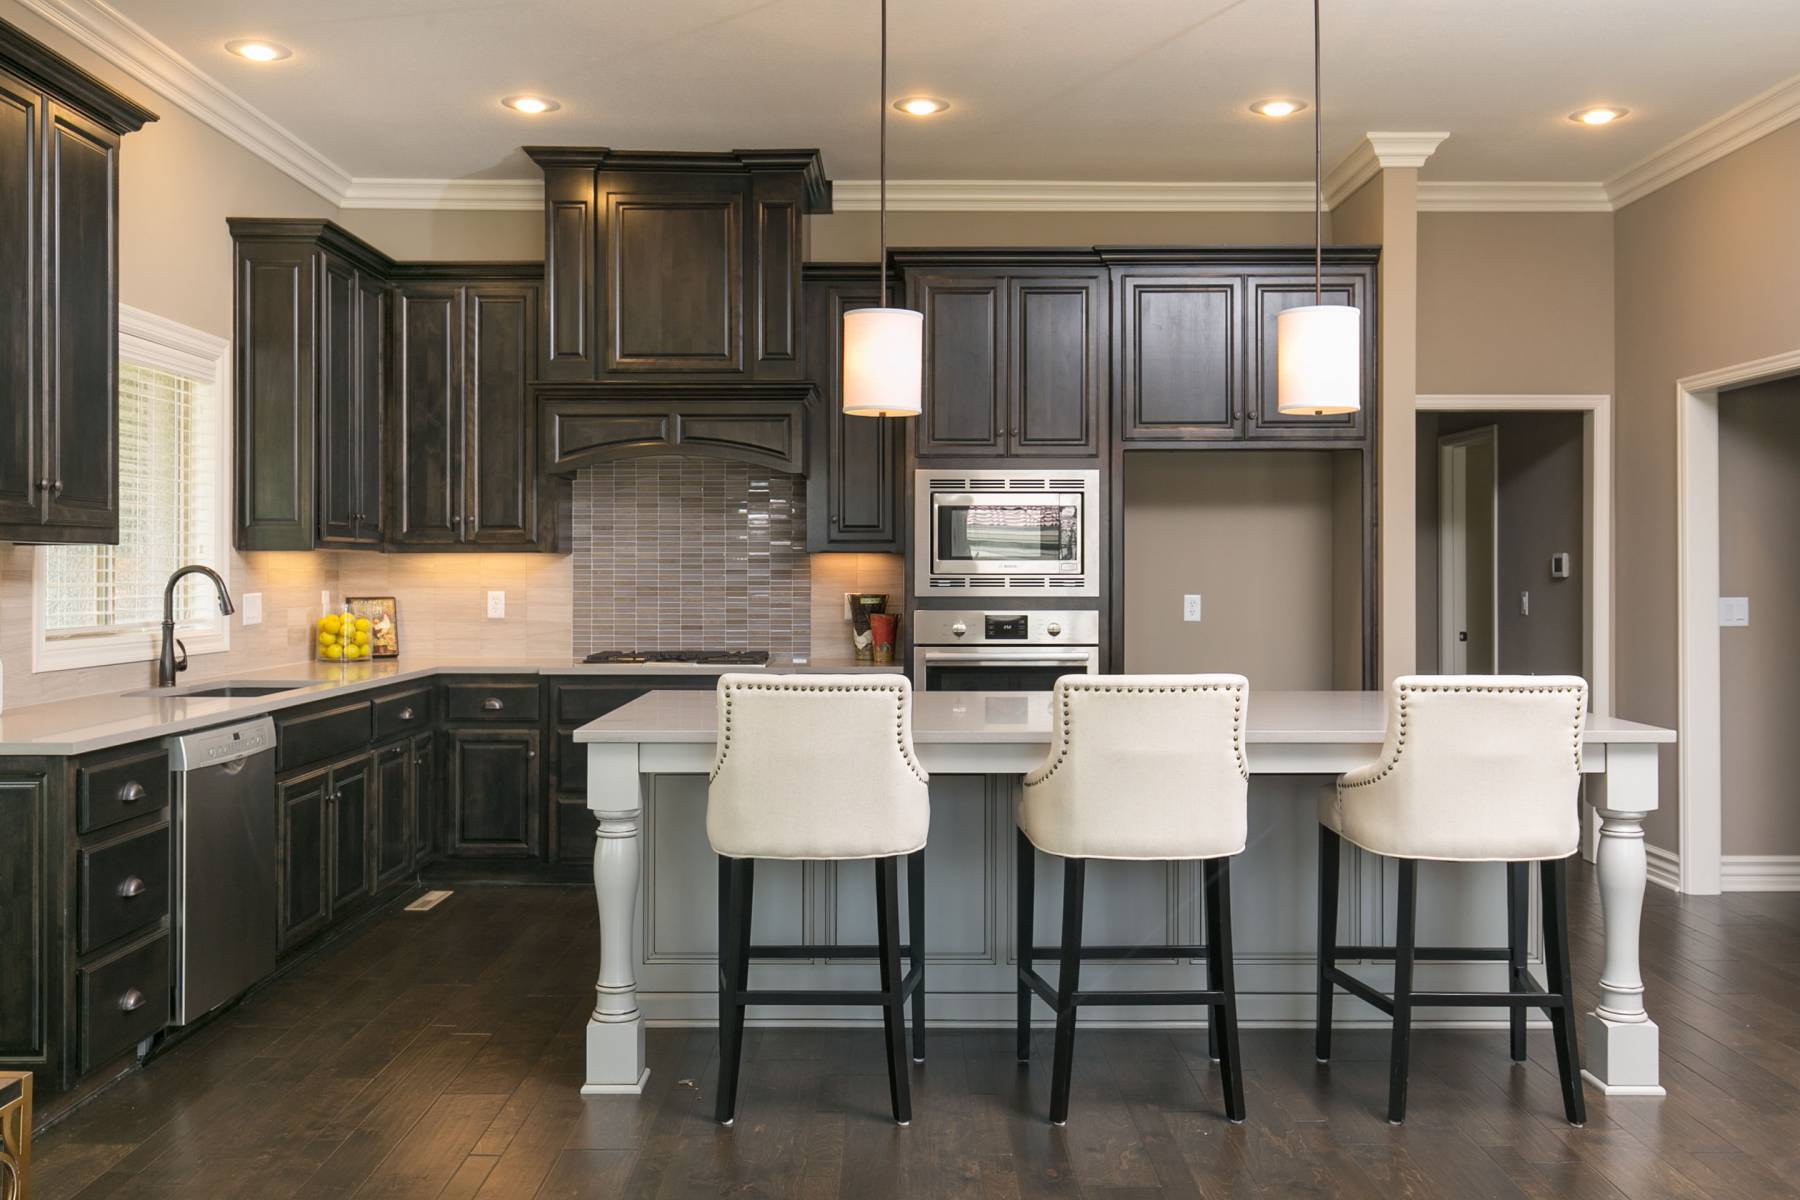 Kitchen featured in the Florence By Summit Homes in Kansas City, MO